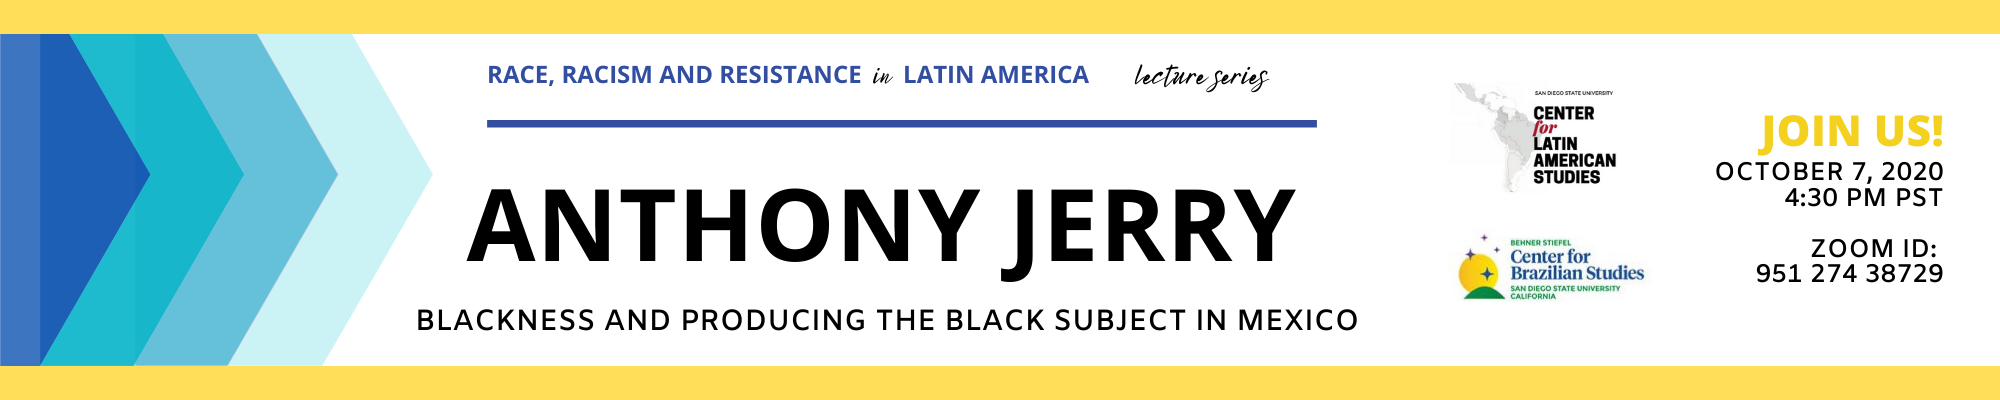 Race, Racism and Resistance in Latin American lecture series Featuring Anthony Jerry Blackness and Producing the Black Subject in Mexico October 7, 2020 4:30 PM PST Zoom ID 95127438729